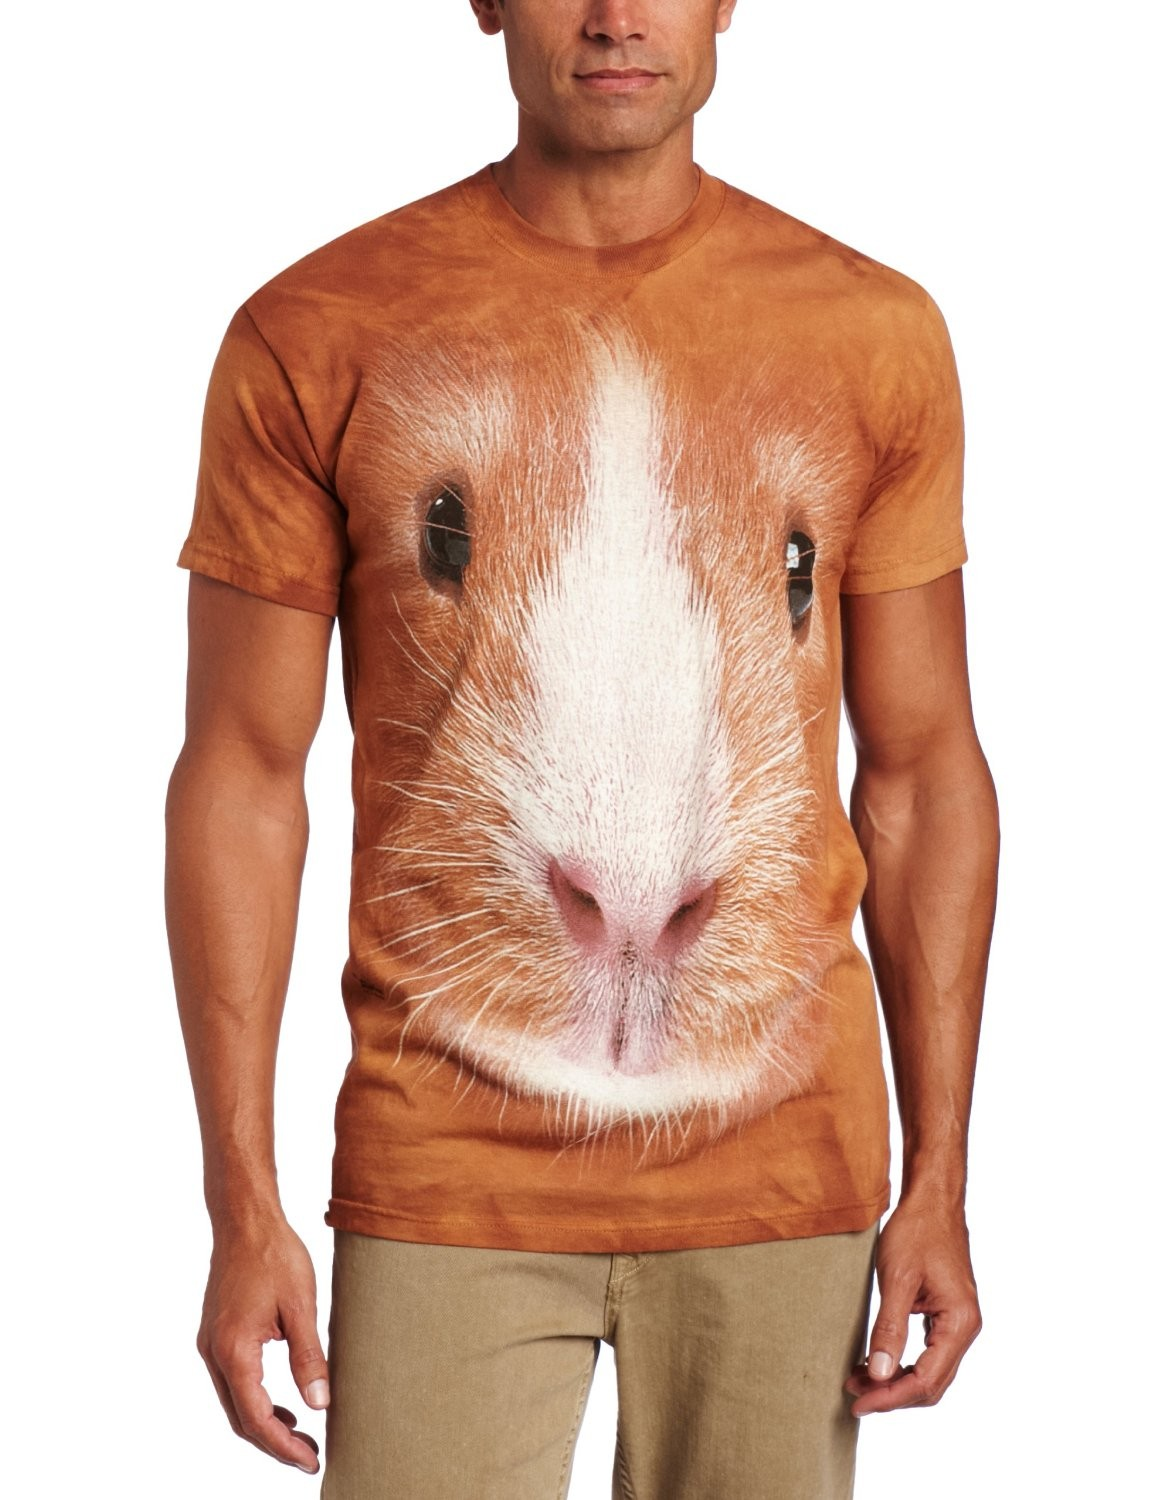 Camiseta - The Mountain - Guinea Pig Face